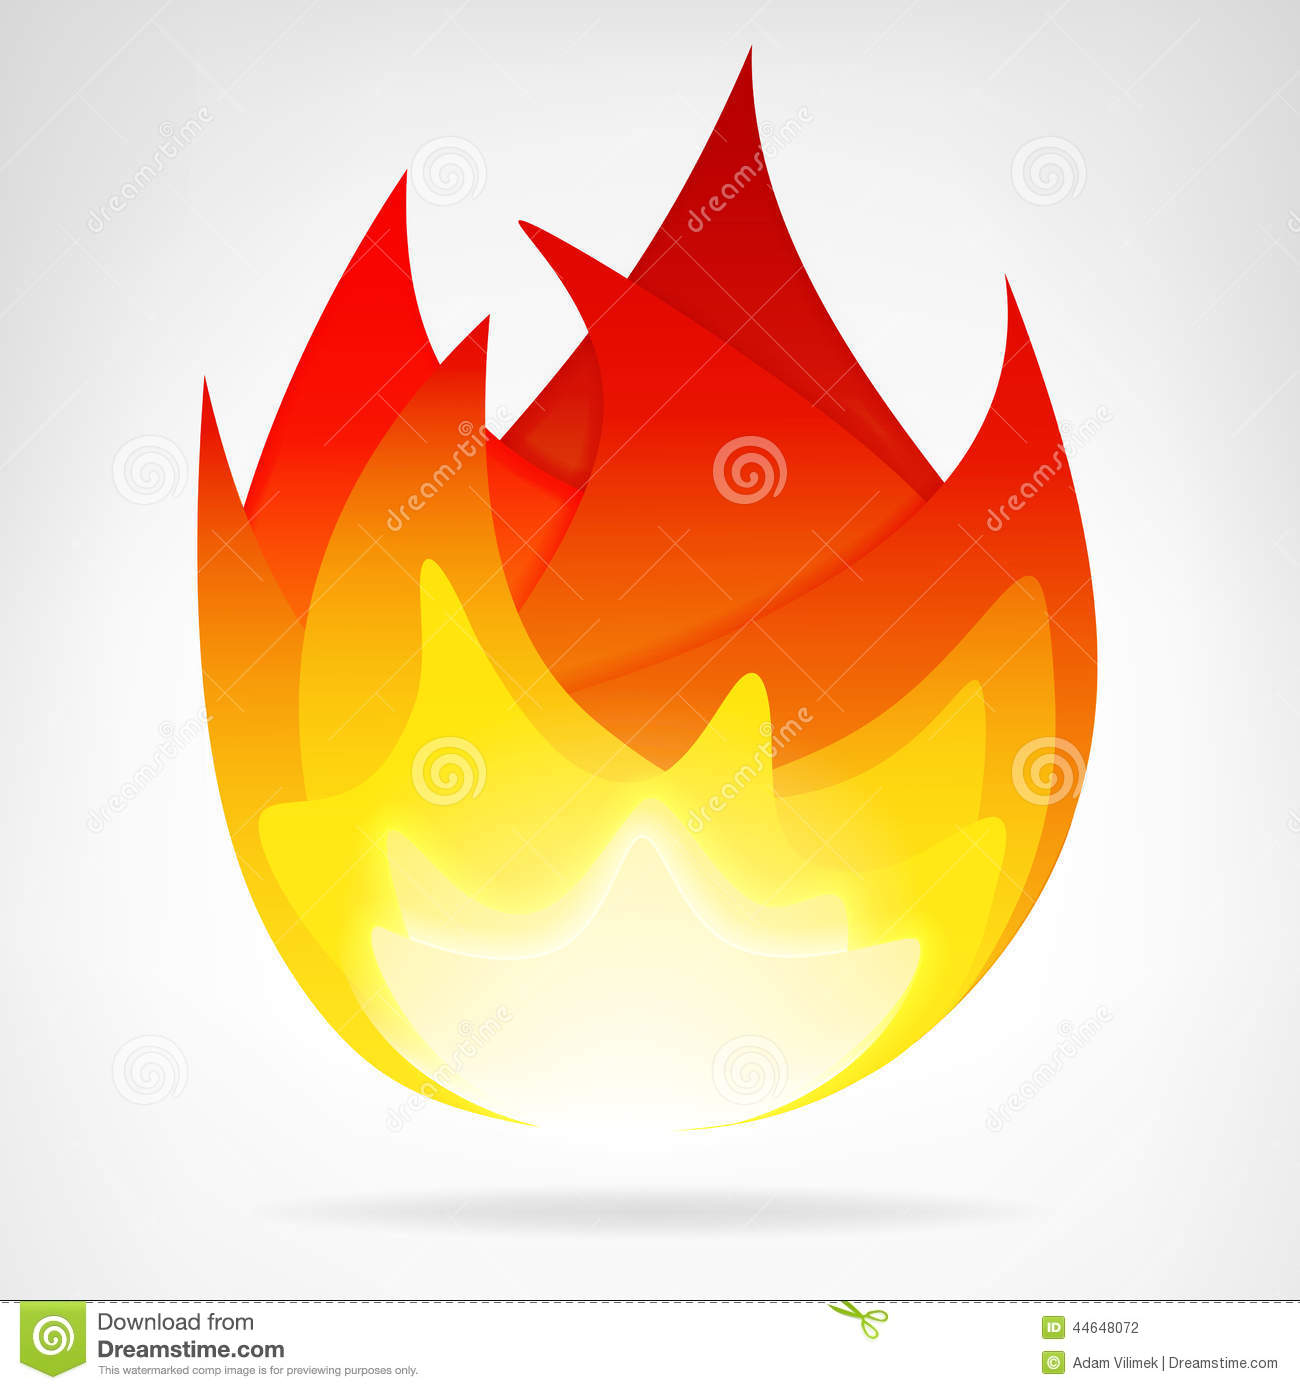 fire danger map with Stock Illustration Fire Flame Energy Isolated Vector Teplate Illustration Image44648072 on Stock Illustration Big Fire Smoke Set Vector White Background Image59634450 additionally Stock Image Smoldering C  Fire Ash Wood Remains Grassy Area Image31257411 besides Stock Illustration Angry Lion White Background Image58617754 likewise Royalty Free Stock Images Earth Fire Image12300949 further 20140304 au.